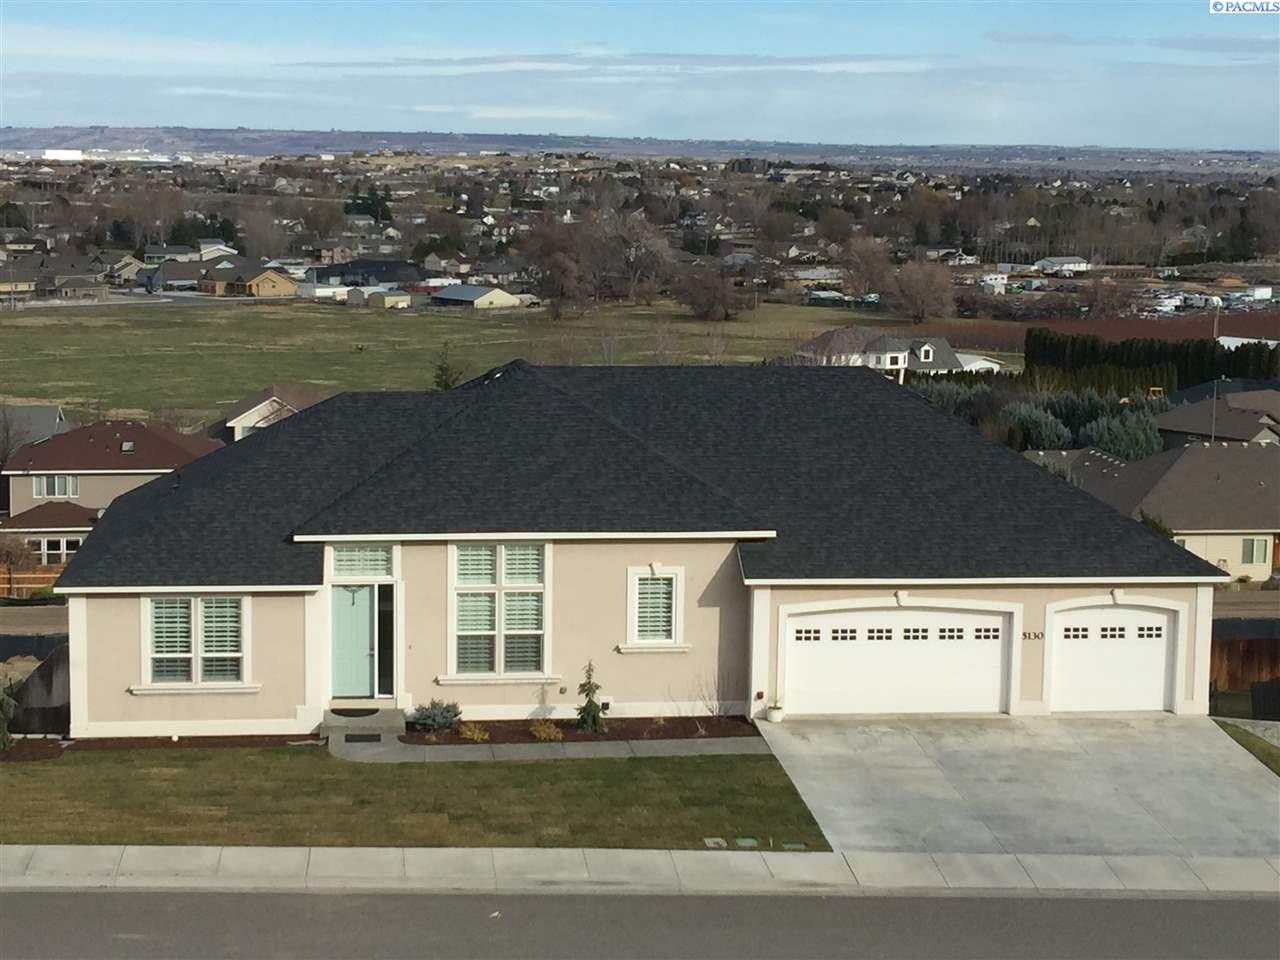 Single Family Home for Sale at 5130 Hershey Lane 5130 Hershey Lane West Richland, Washington 99353 United States